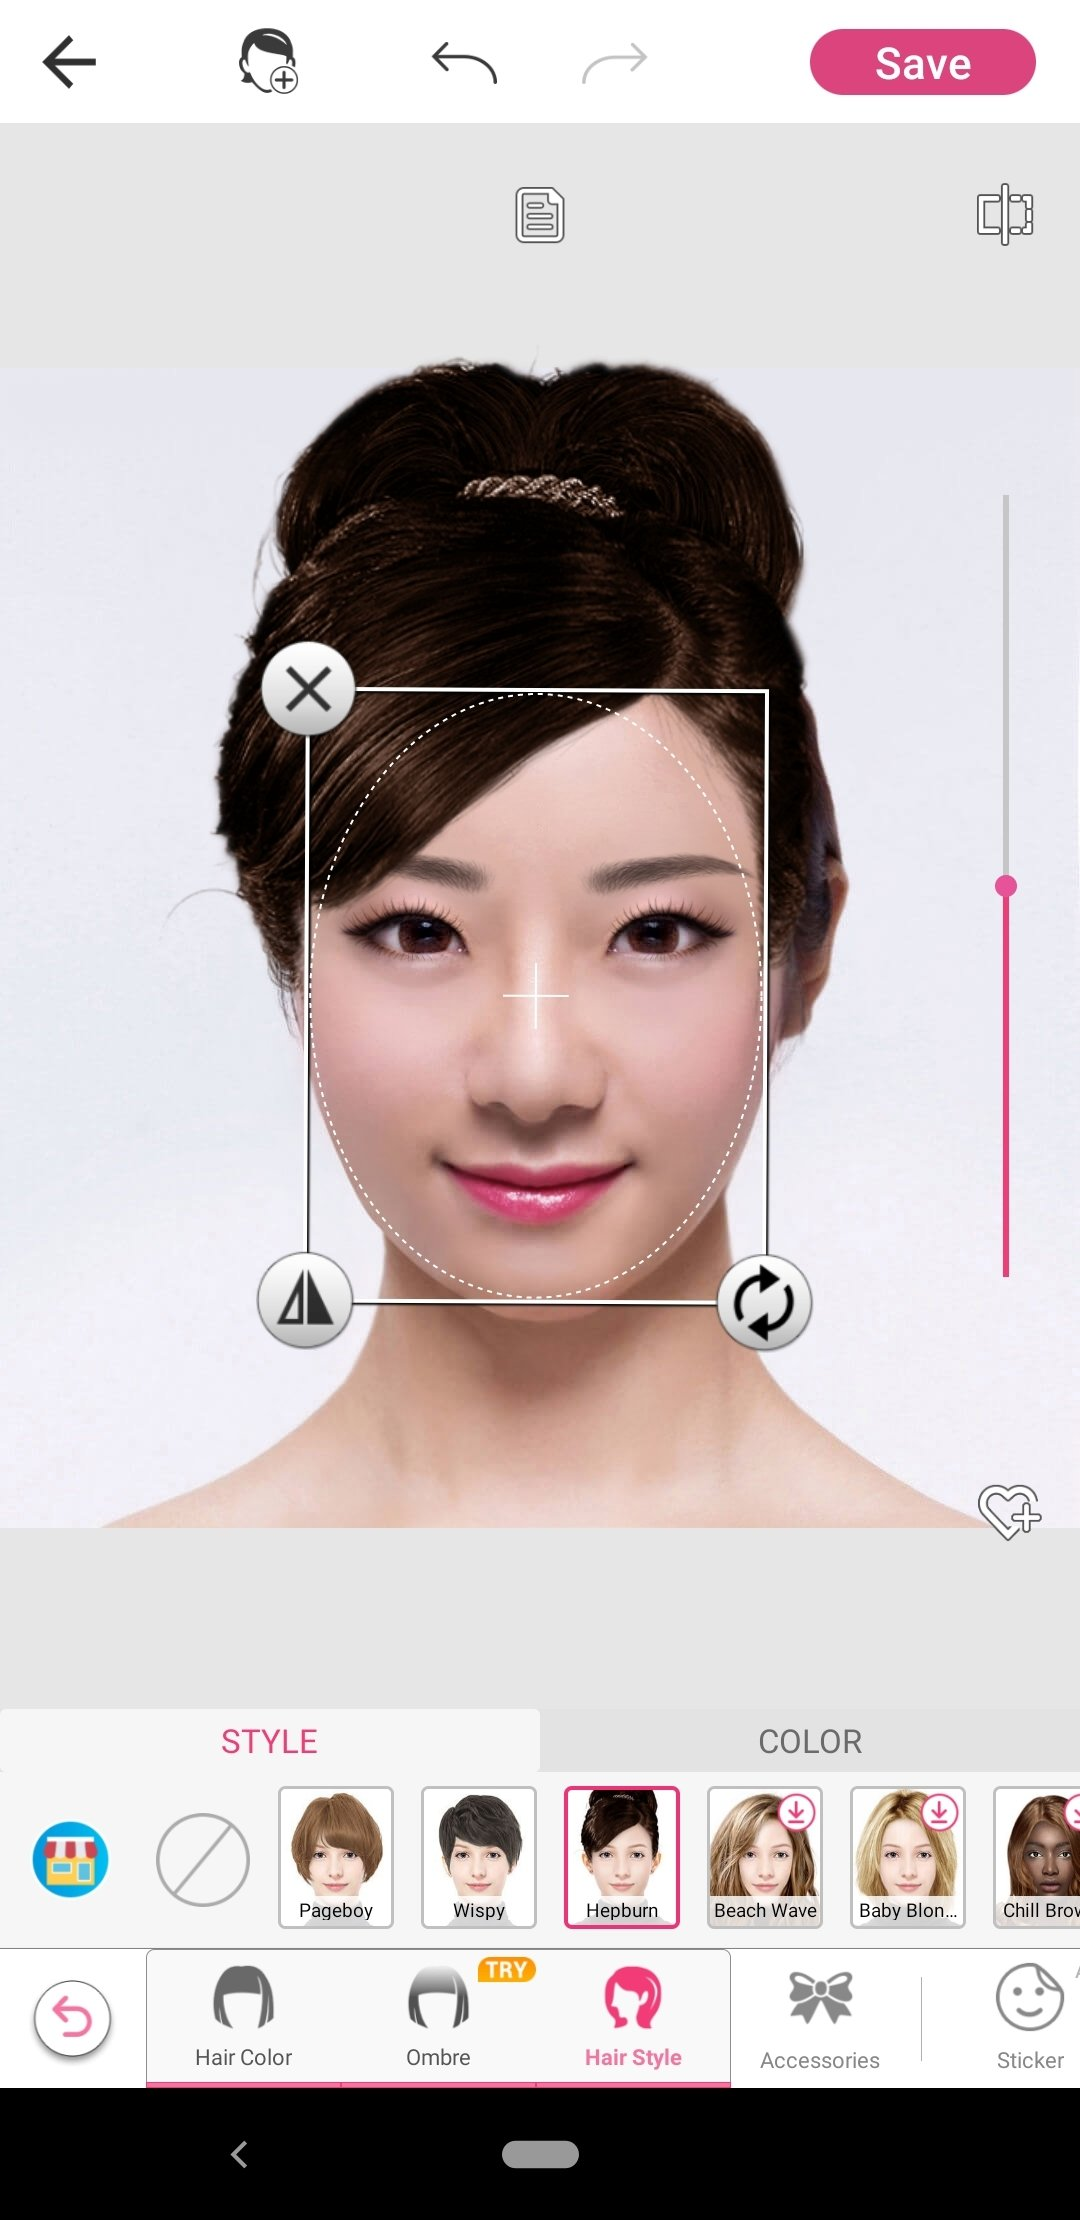 YouCam Makeup Android image 8